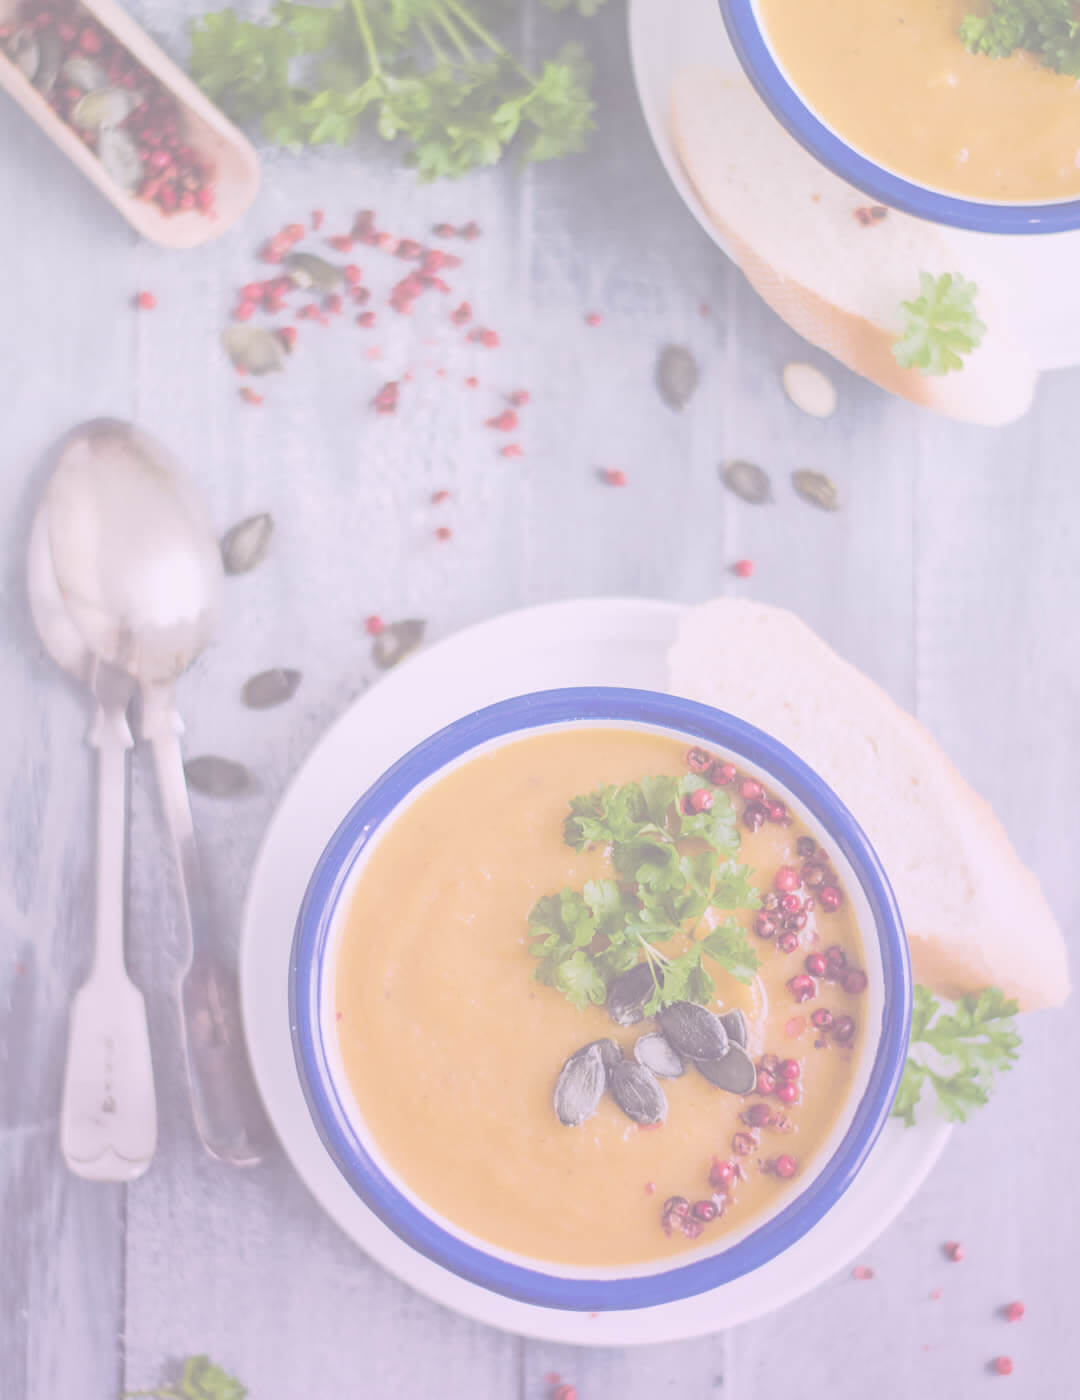 umpkin soup as one of the best foods for mental health